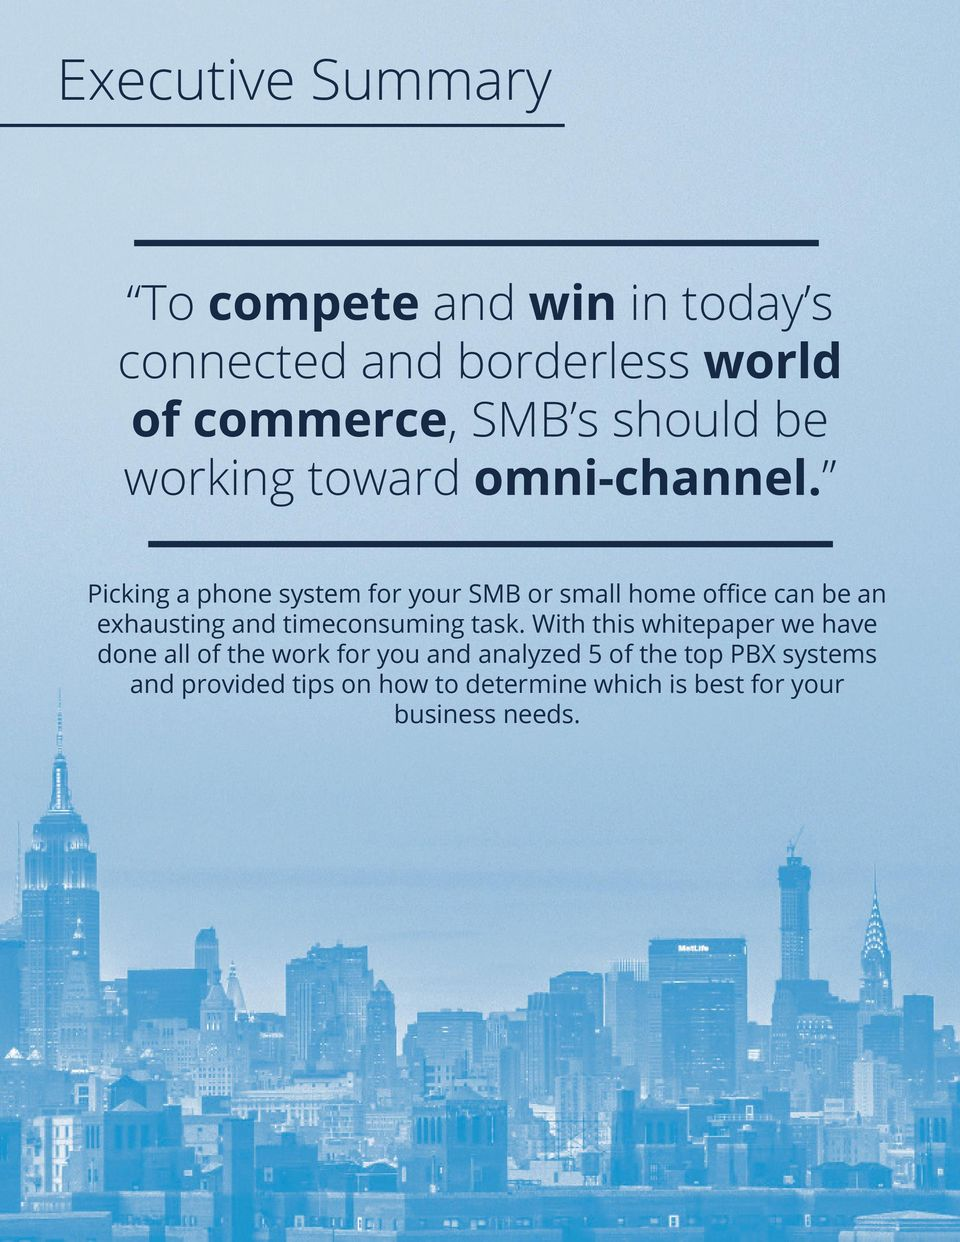 Picking a phone system for your SMB or small home office can be an exhausting and timeconsuming task.